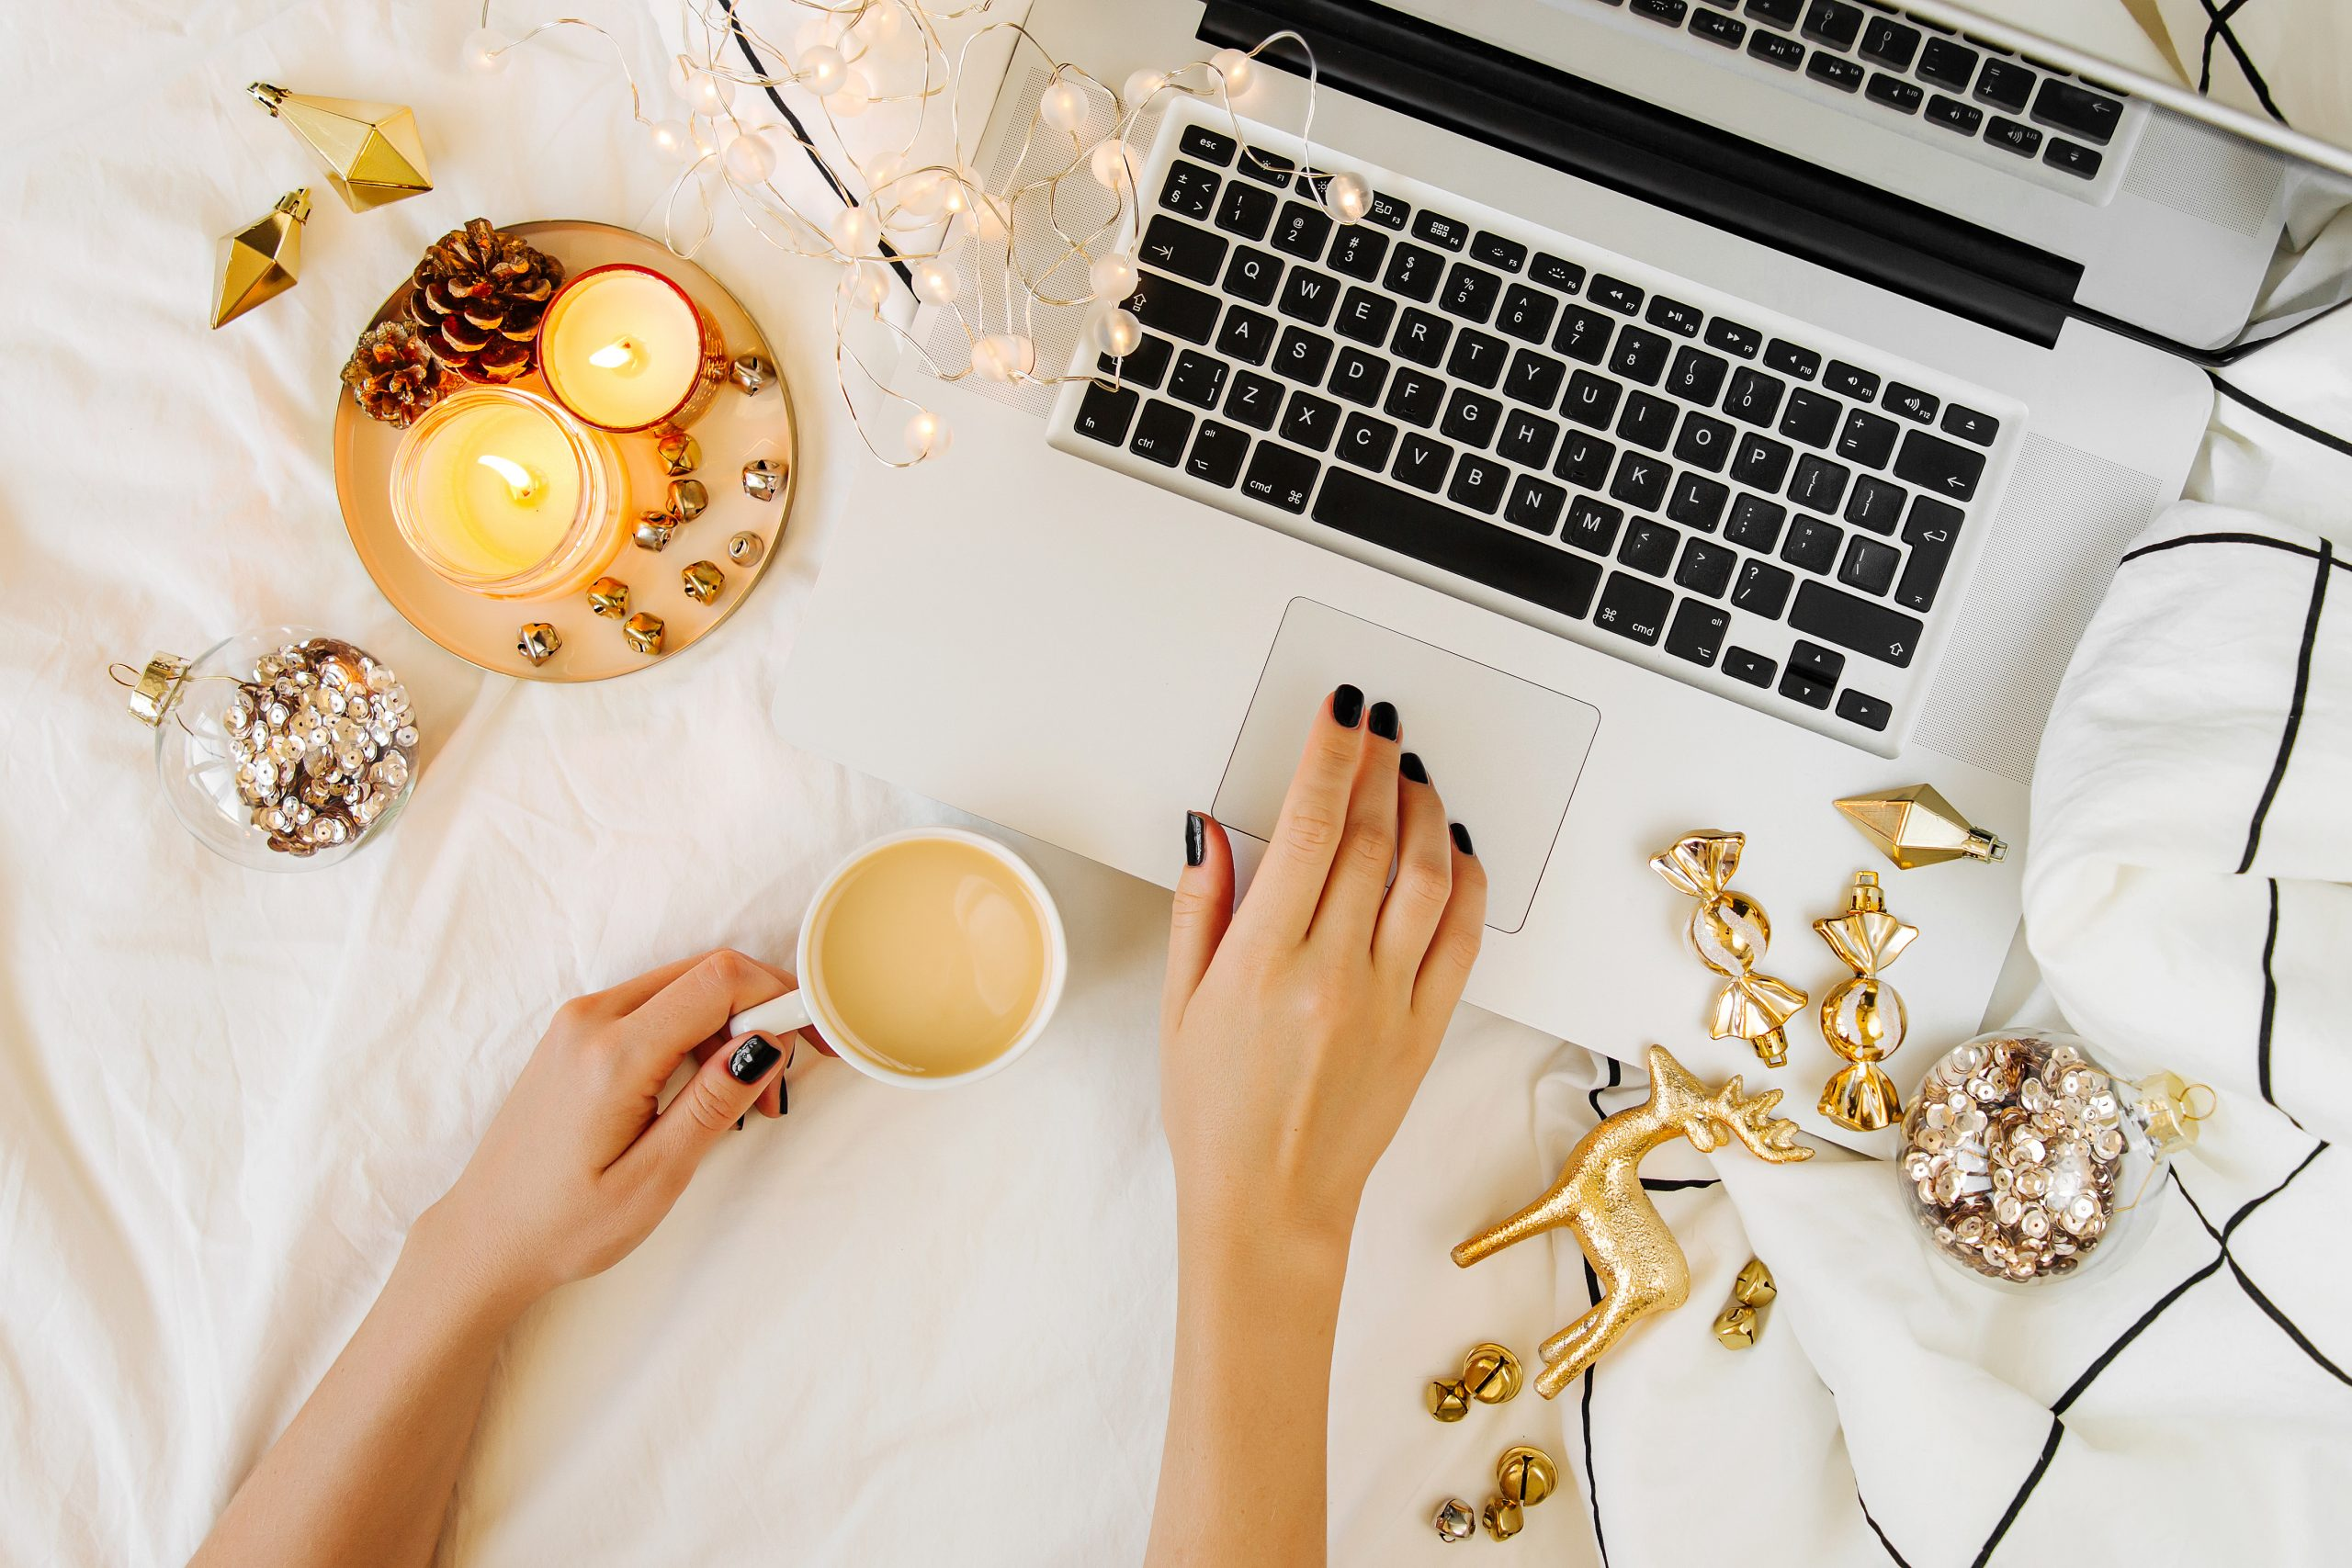 Christmas online shopping.  Woman has coffee, buys presents online. Laptop with Christmas decorations on white bed with a blanket. Holiday concept. Flat lay, top view